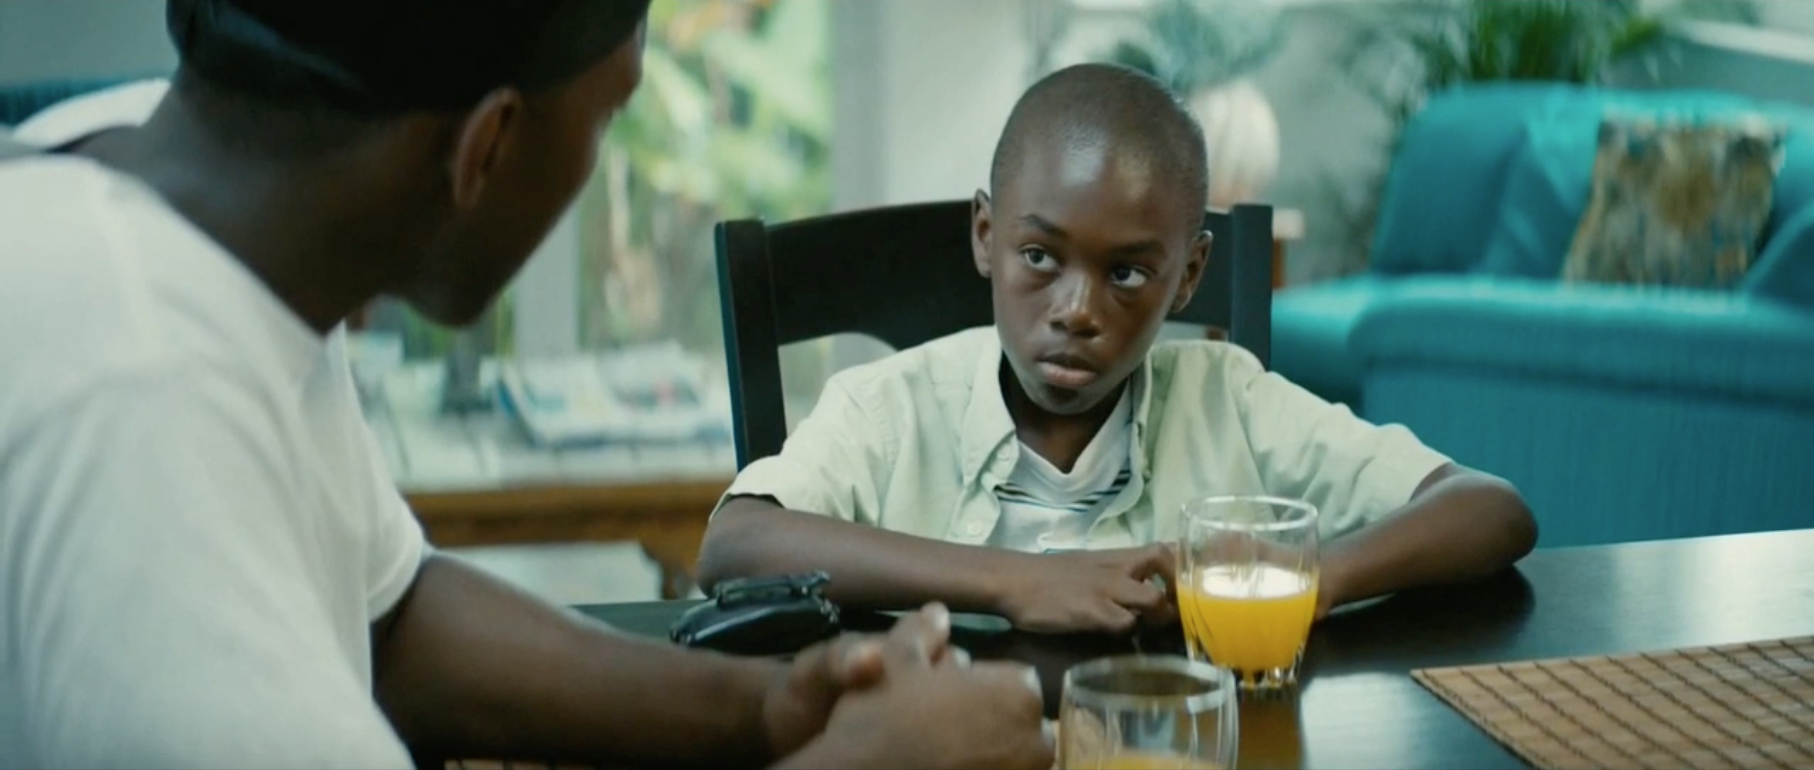 A young boy is sitting at the table quietly drinking juice.